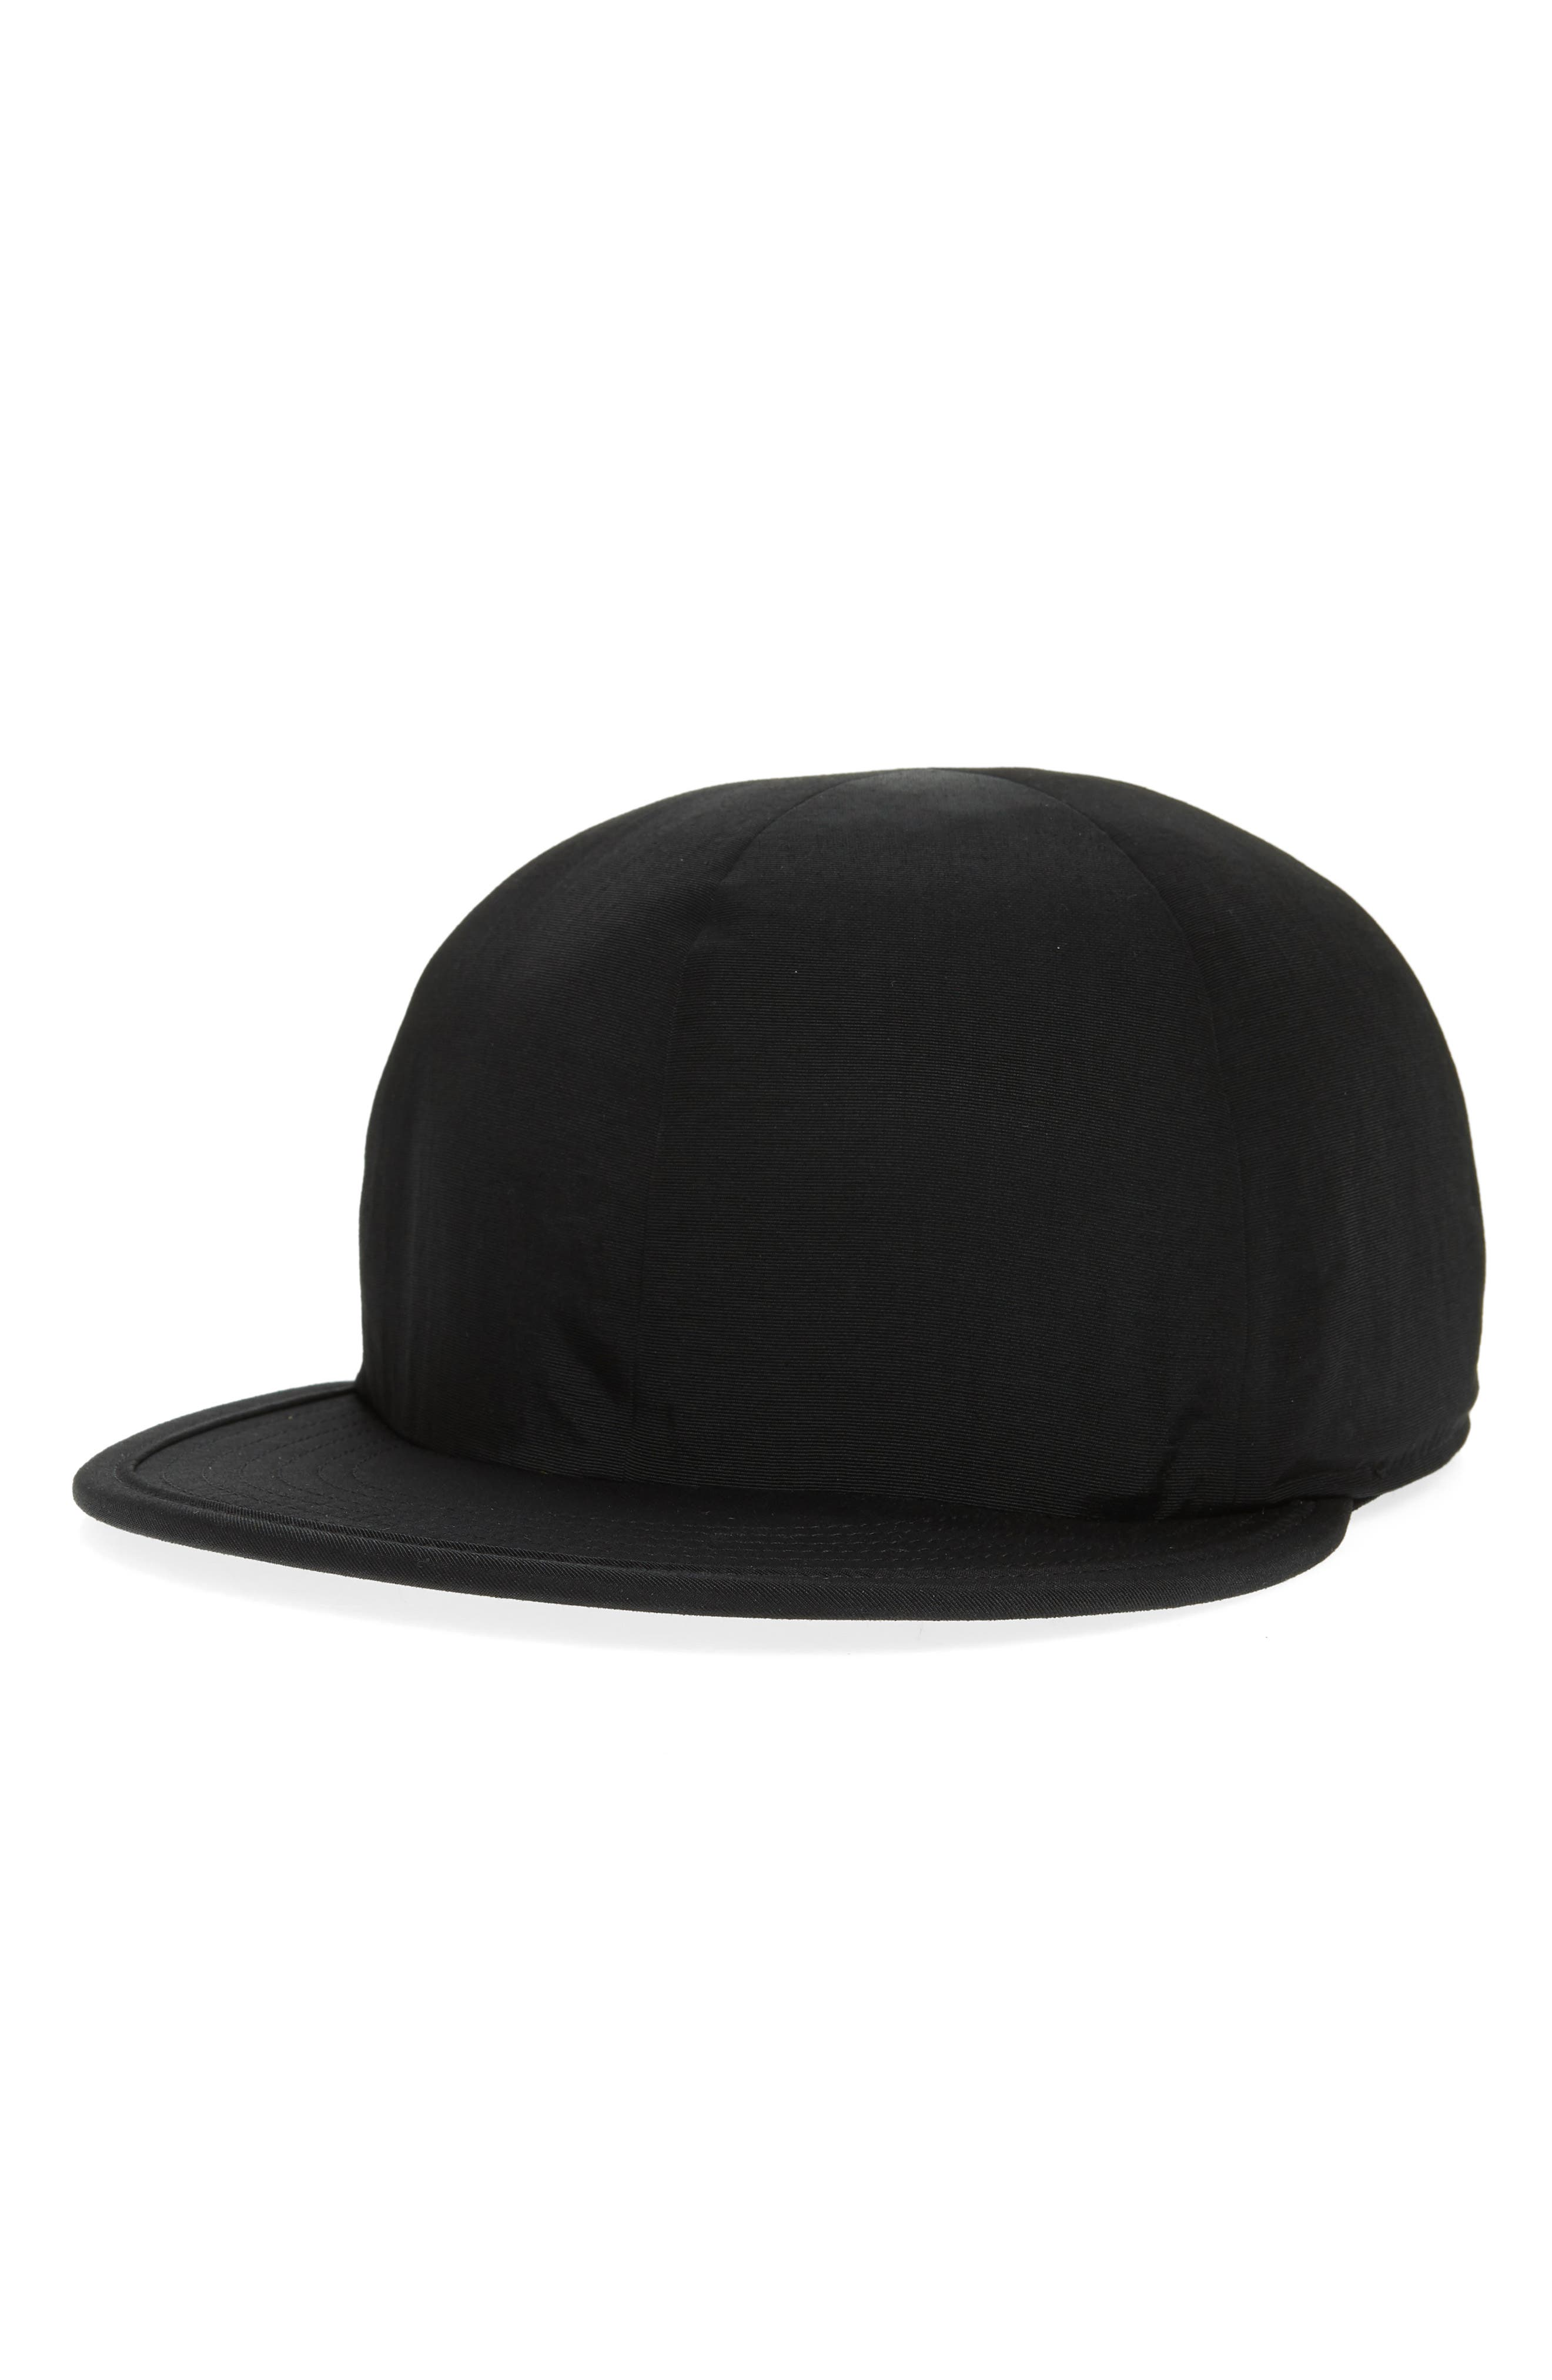 Canyon Baseball Cap,                         Main,                         color, BLACK